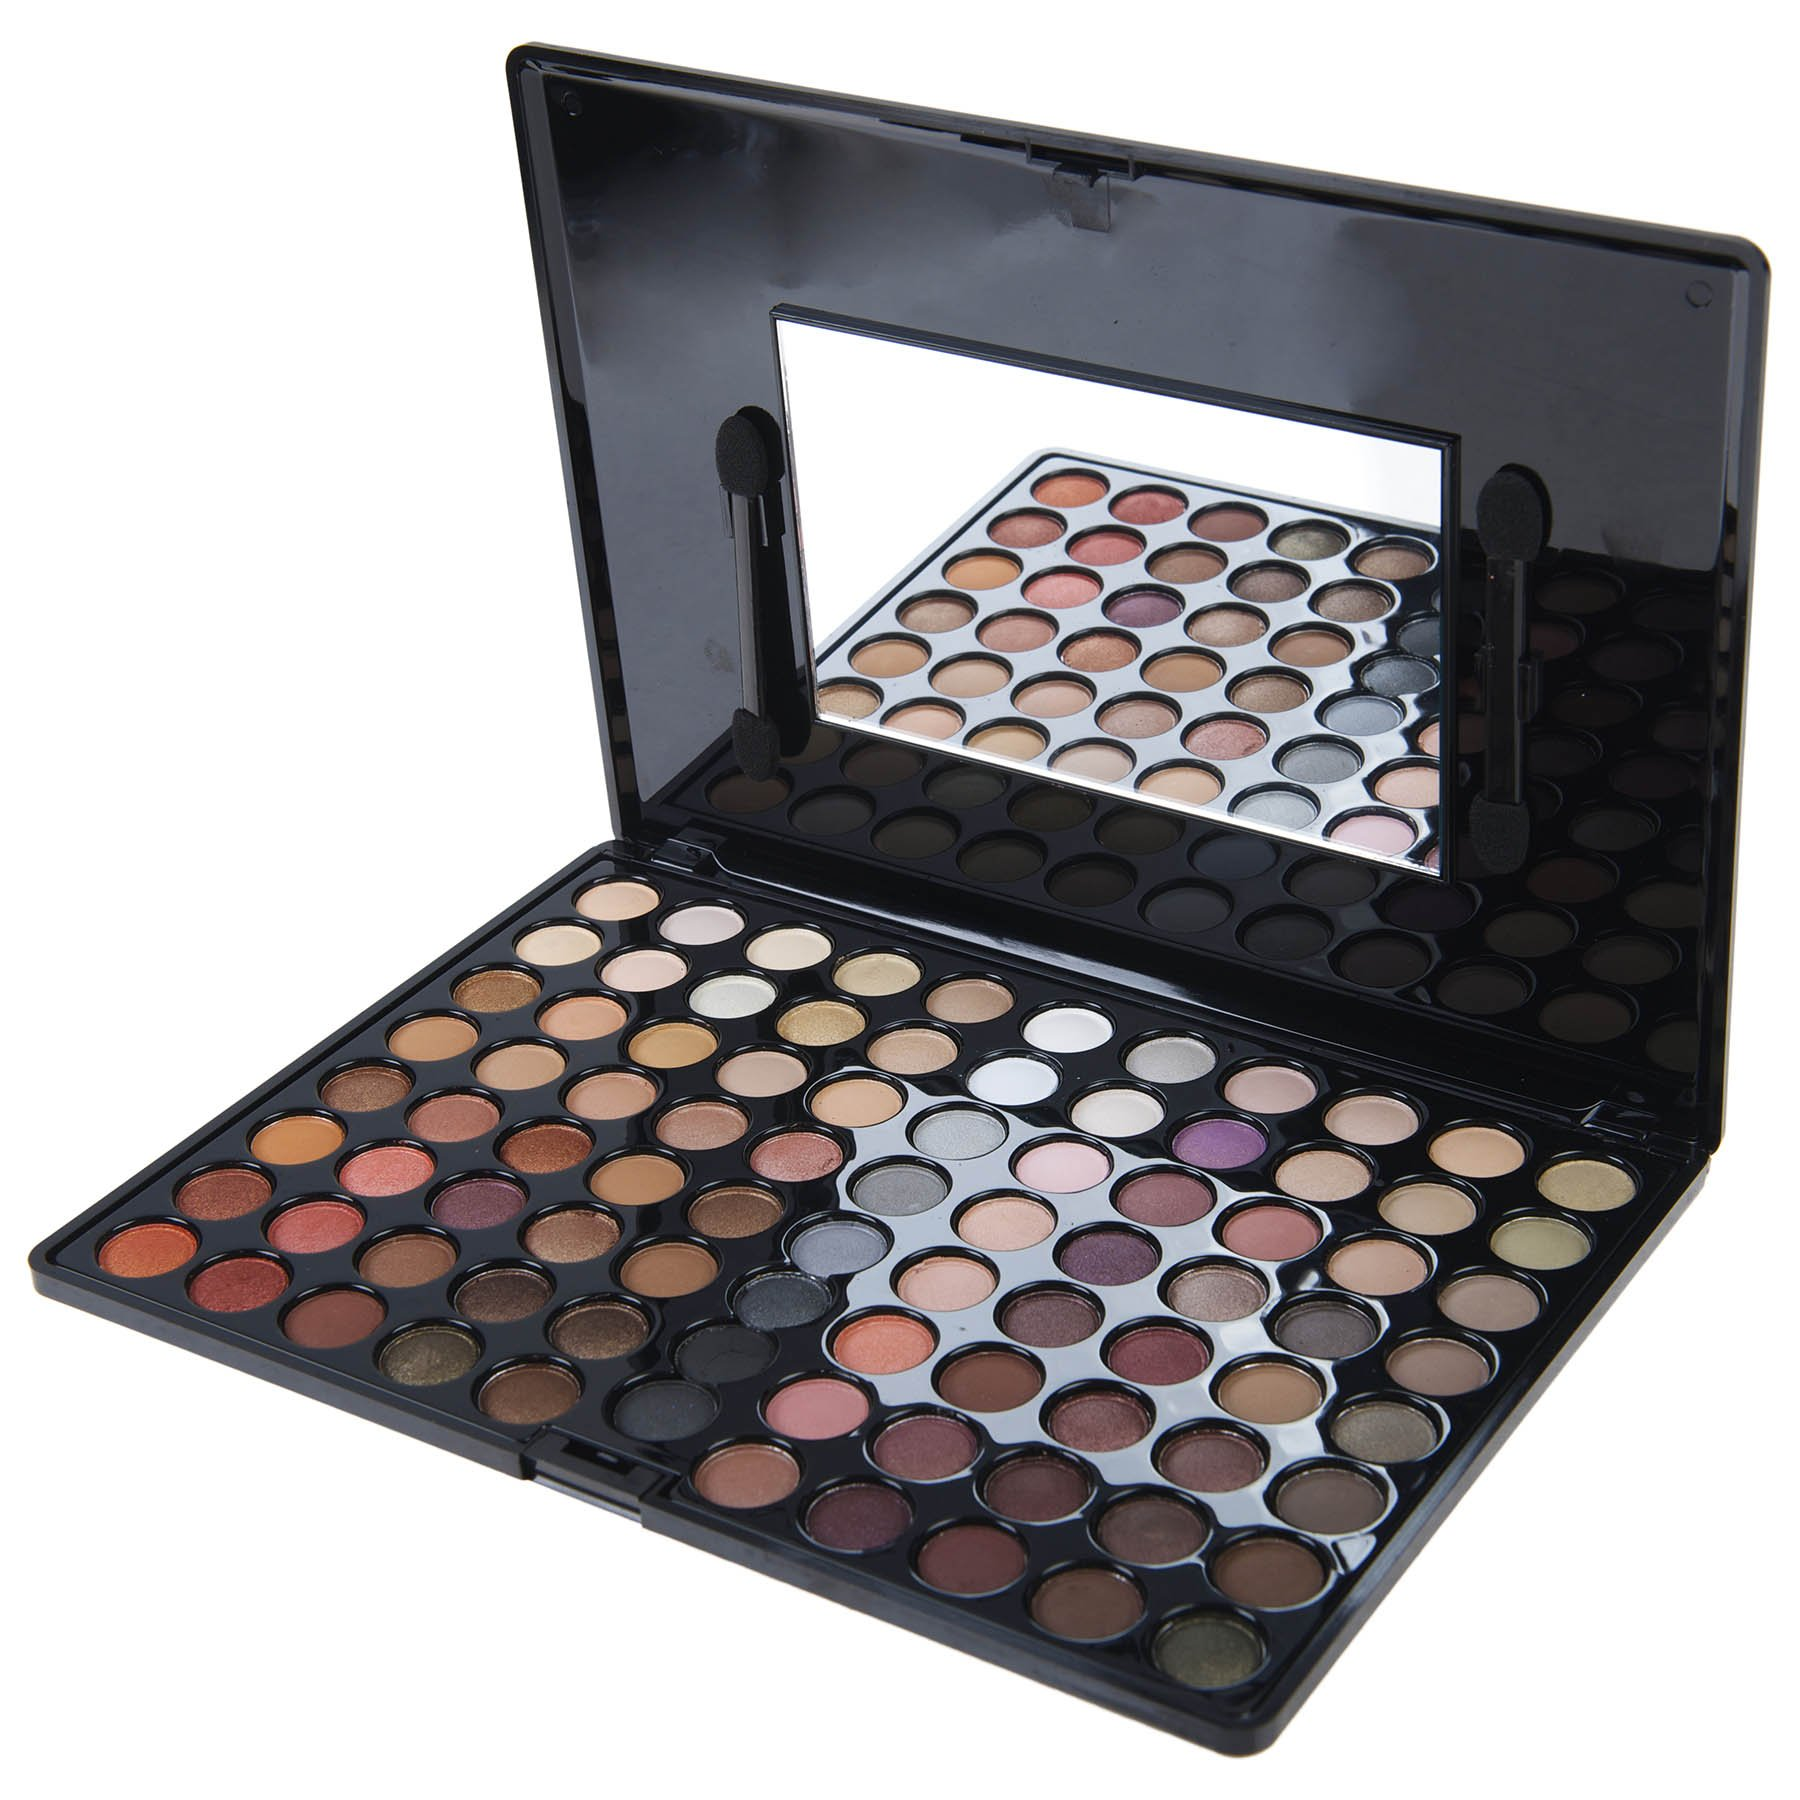 SHANY Natural Fusion Eyeshadow Palette (88 Color Eyeshadow Palette, Nude Palette), 2.15 Ounce by SHANY Cosmetics (Image #7)